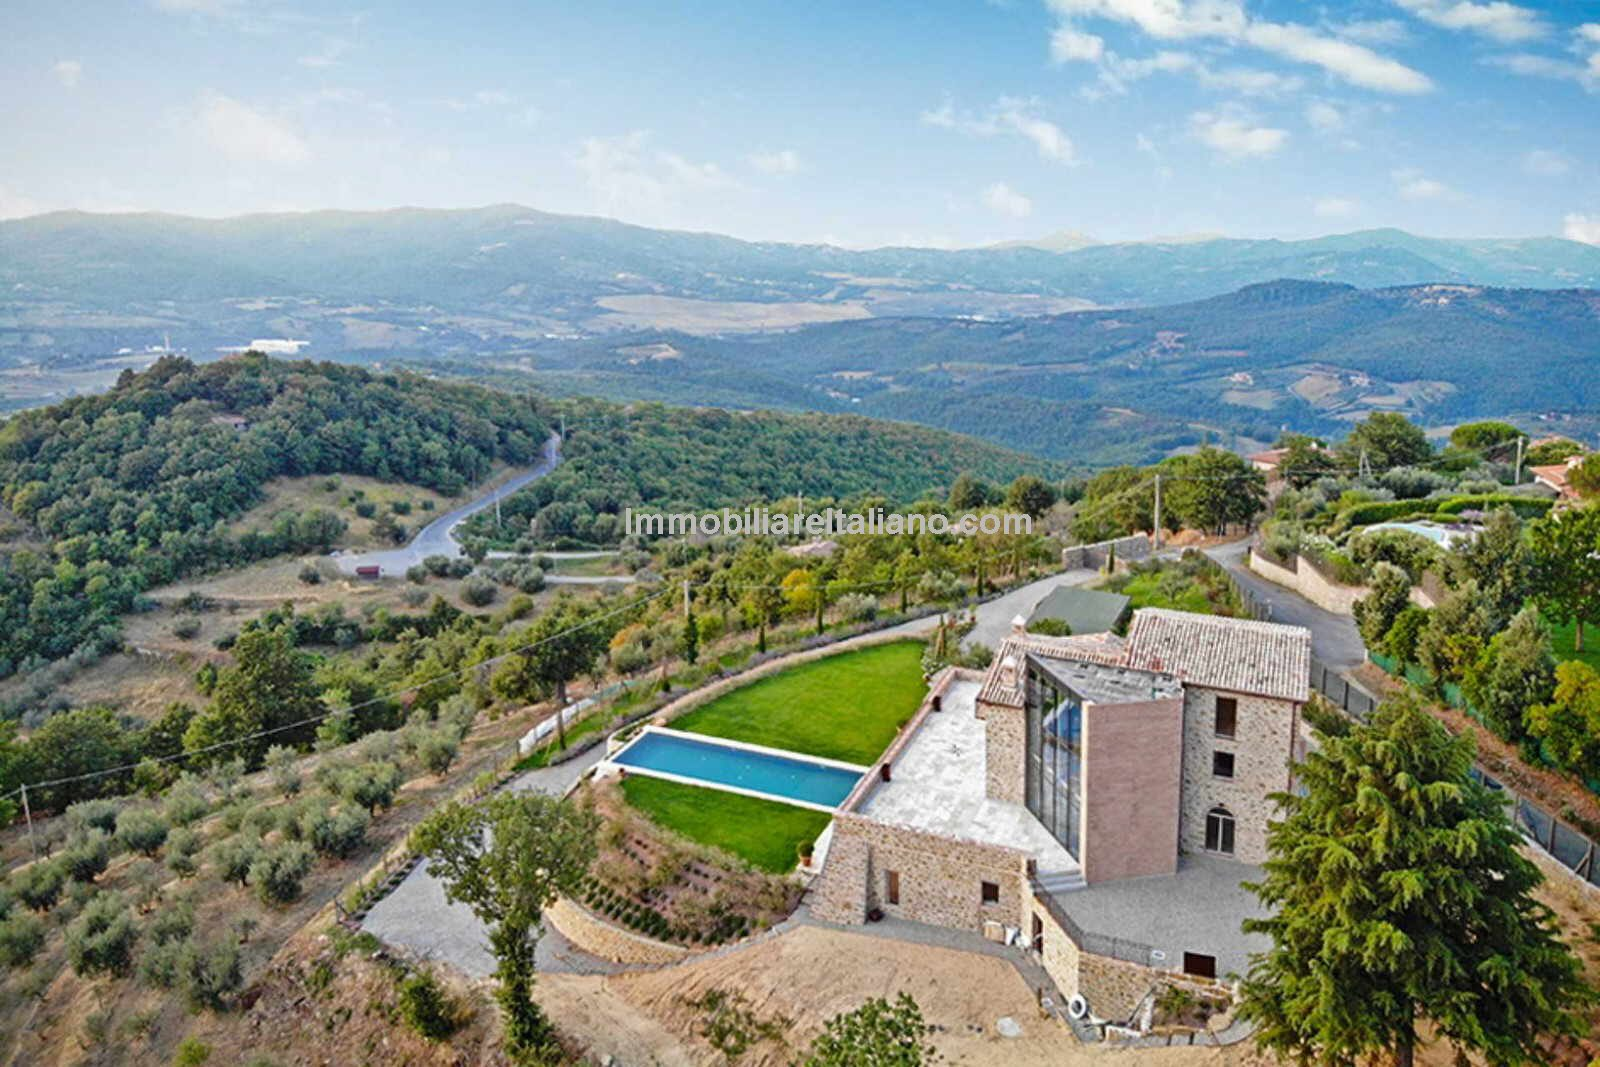 External view of Unique Italian property for sale